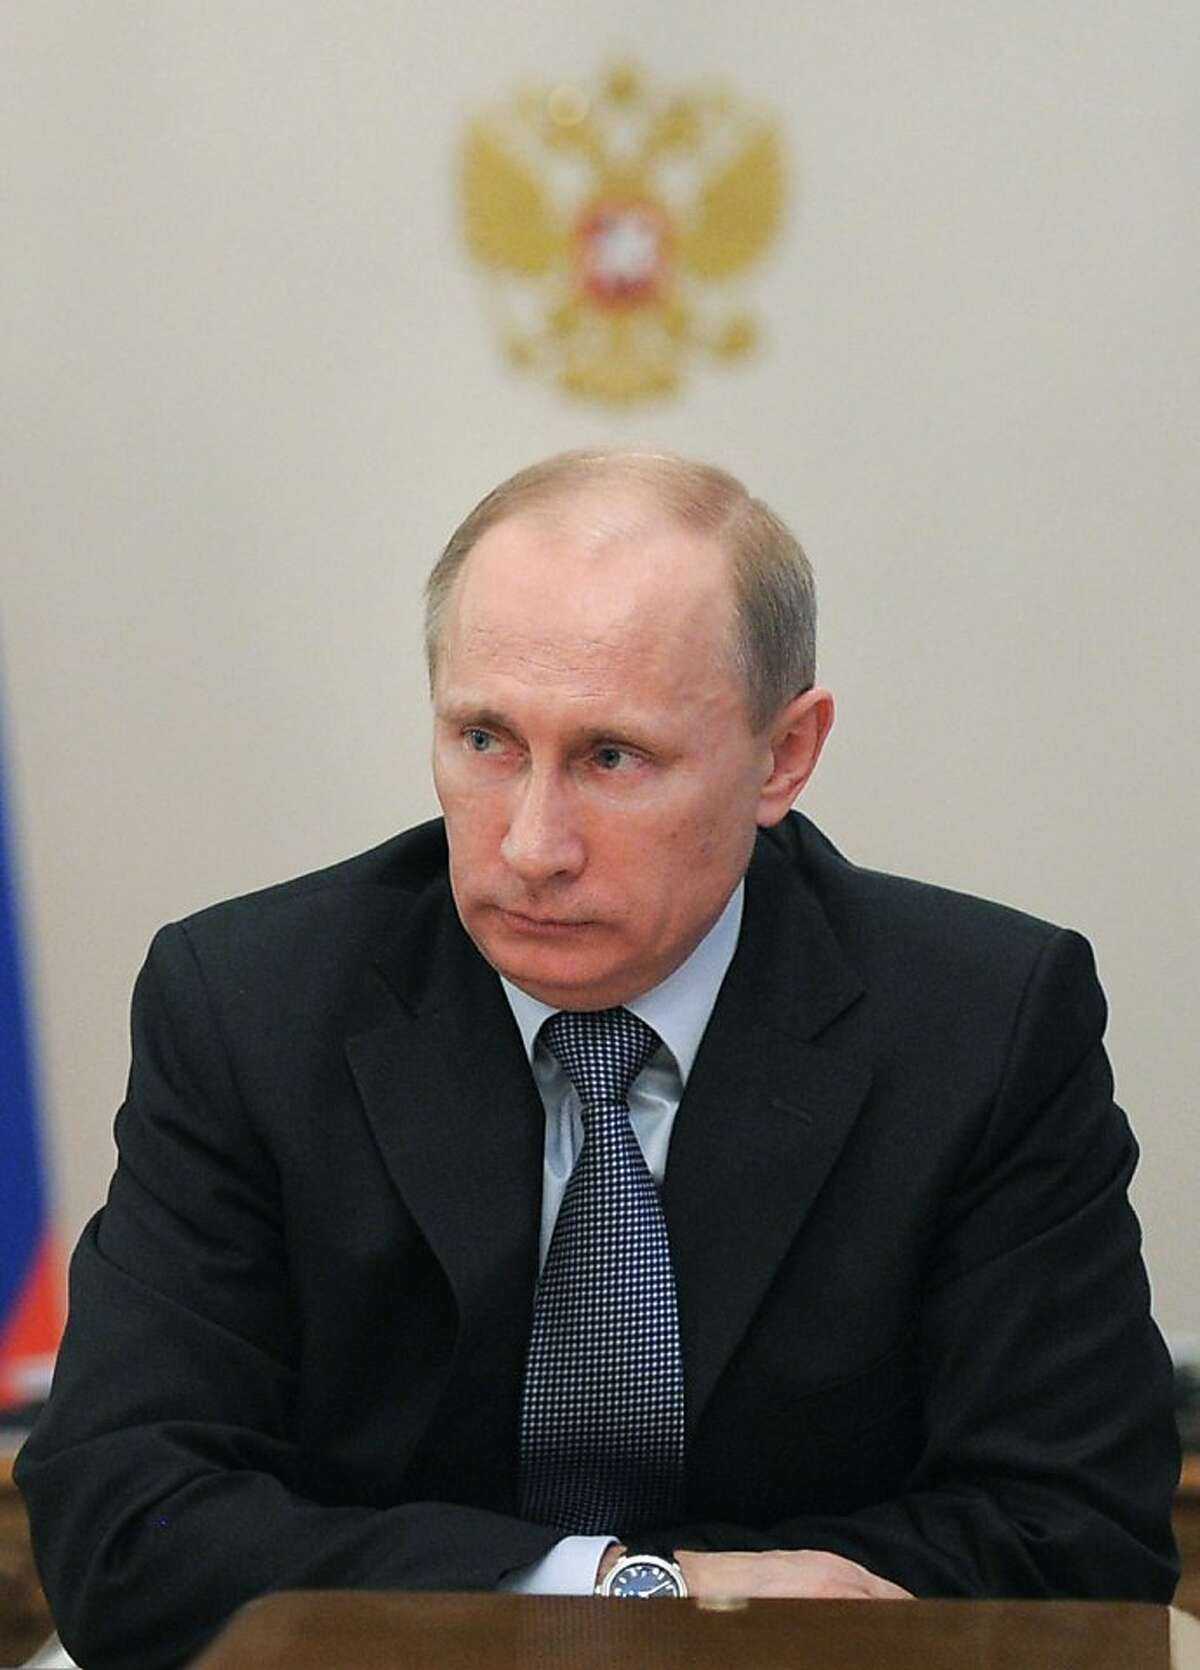 Russian Prime Minister Vladimir Putin speaks during the meeting of military-technical cooperation in the Novo-Ogaryovo residence outside Moscow, Monday, Feb. 27, 2012. Putin warned against military intervention in Syria or an attack on Iran in scathing criticism of the West on Monday as he laid out his foreign policy priorities ahead of Russia's presidential vote. In Monday's article, Putin again criticized the U.S.-led plans for a NATO missile defense system in Europe, saying it's aimed against Russian nuclear forces. (AP Photo/RIA Novosti, Alexei Druzhinin, Government Press Service)